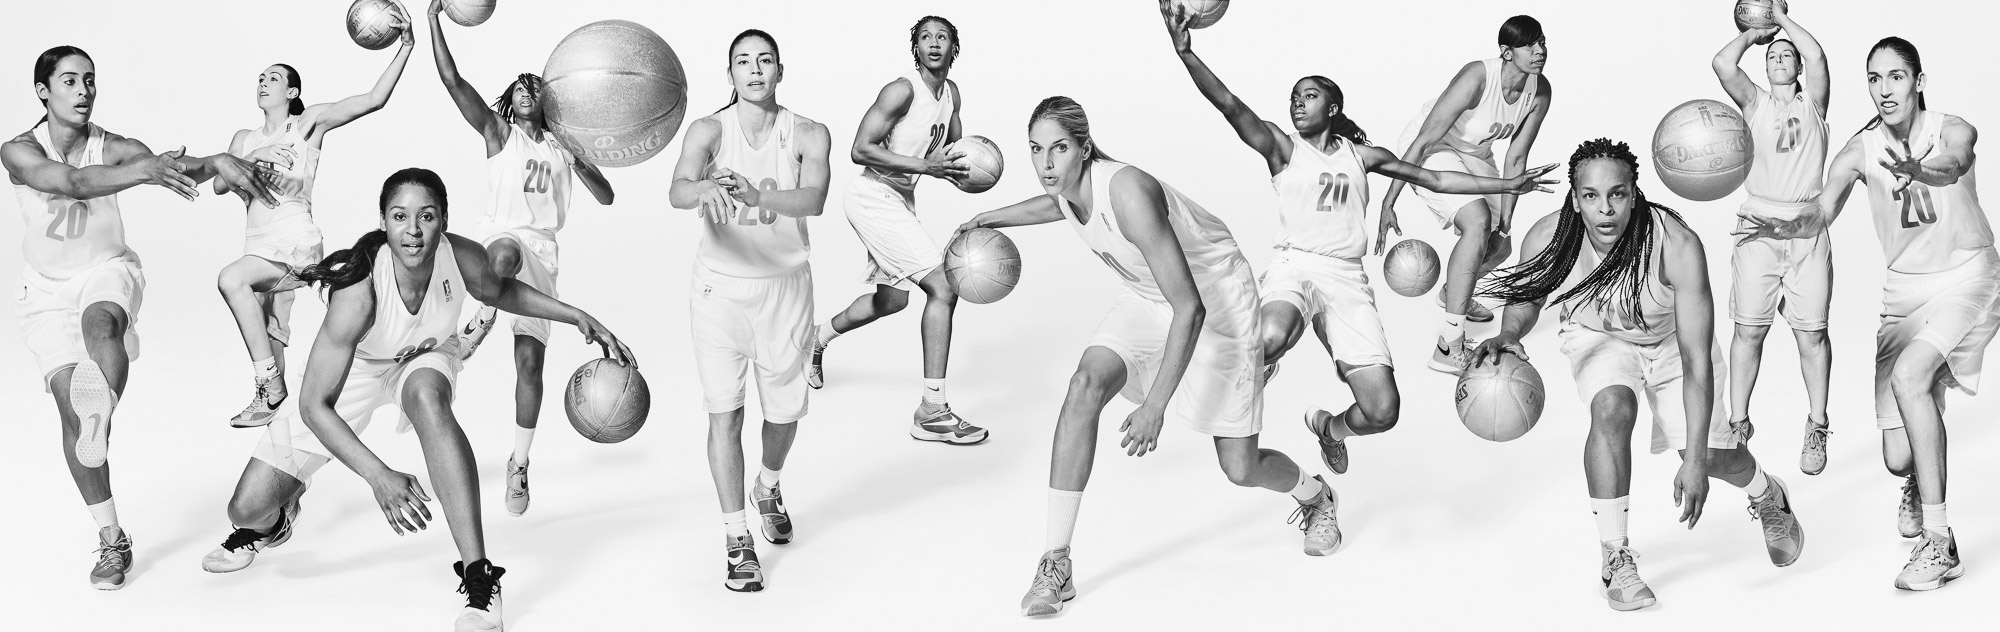 ESPN_WNBA_Collage-1